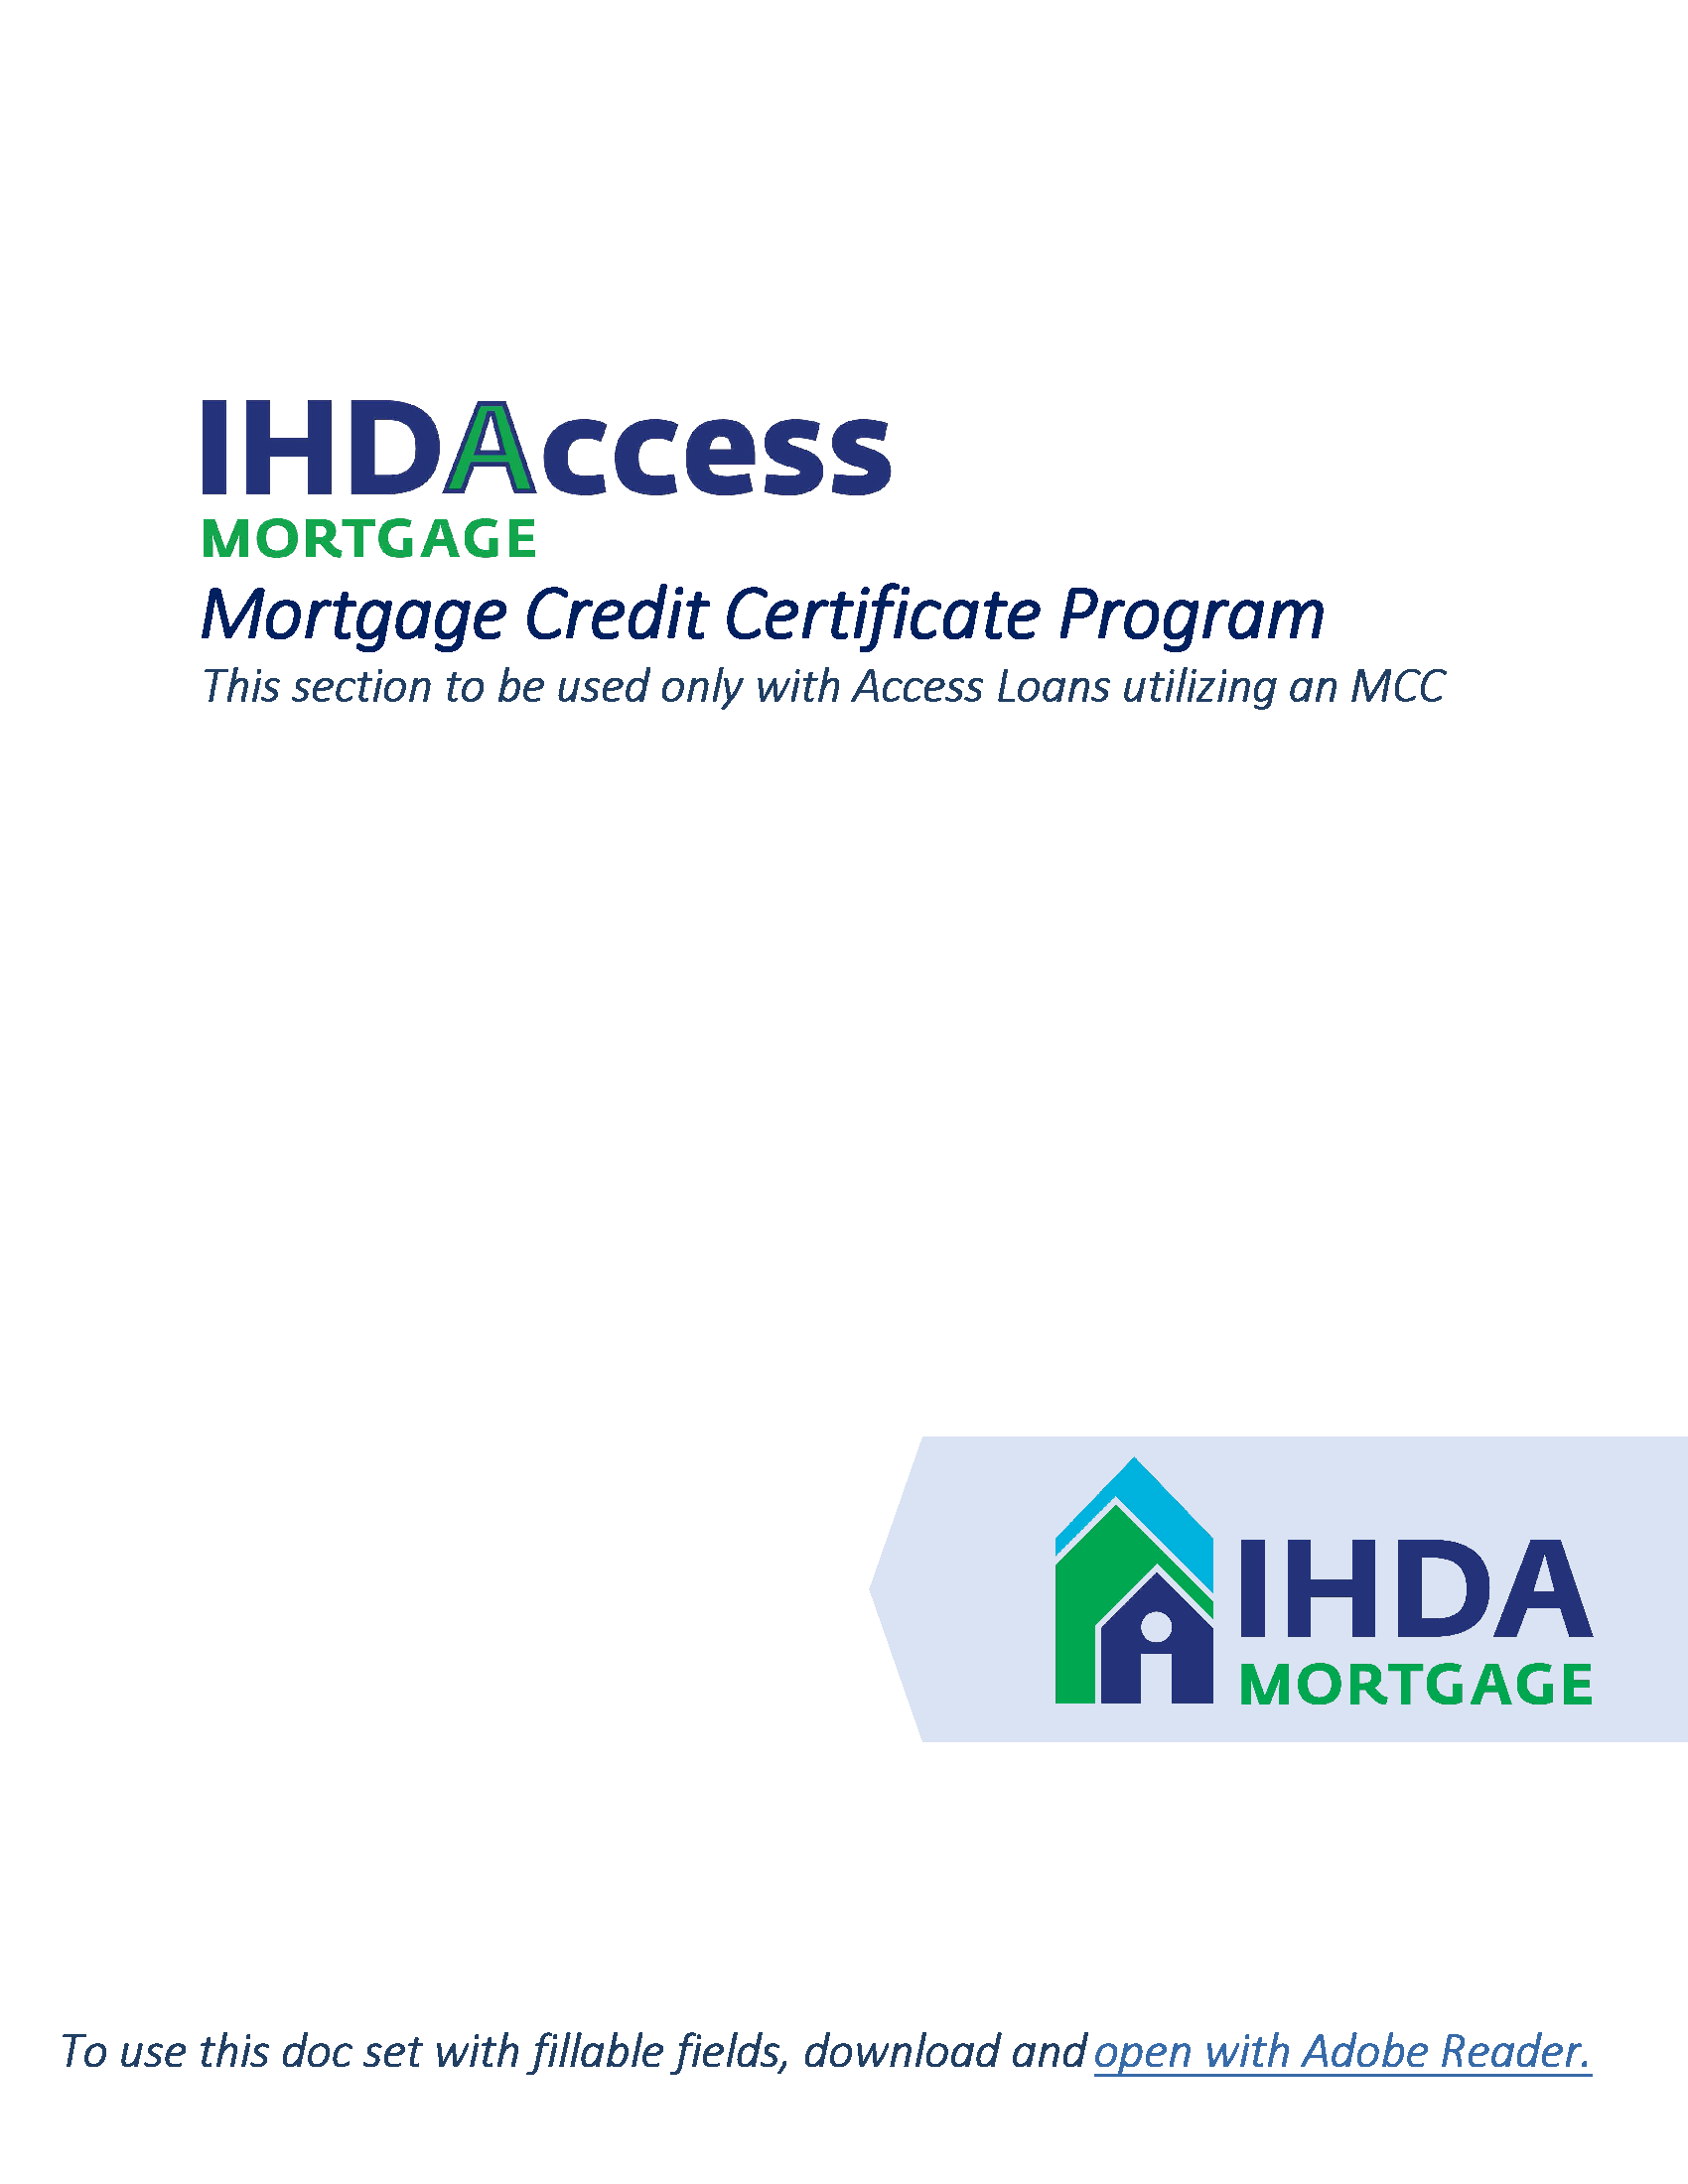 IHDA Mortgage Document Library